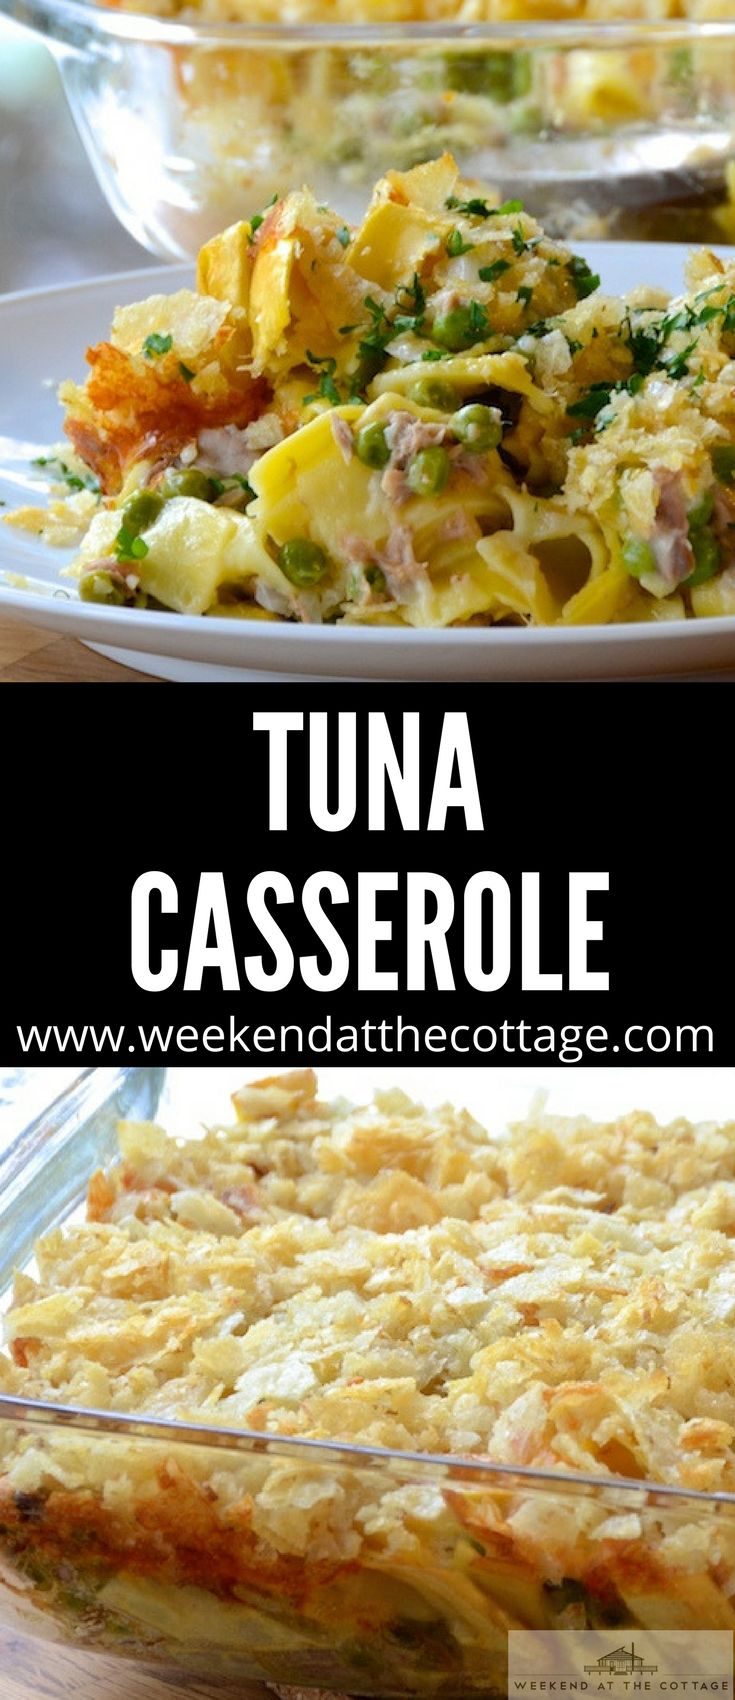 Need a quick and easy dinner that the whole family will love.  In this classic TUNA CASSEROLE recipe we've made our own sauce instead of using canned soup for a healthier version that won't break the bank! #dinnerrecipe #familydinner #casserole #easyrecipe #cheesy